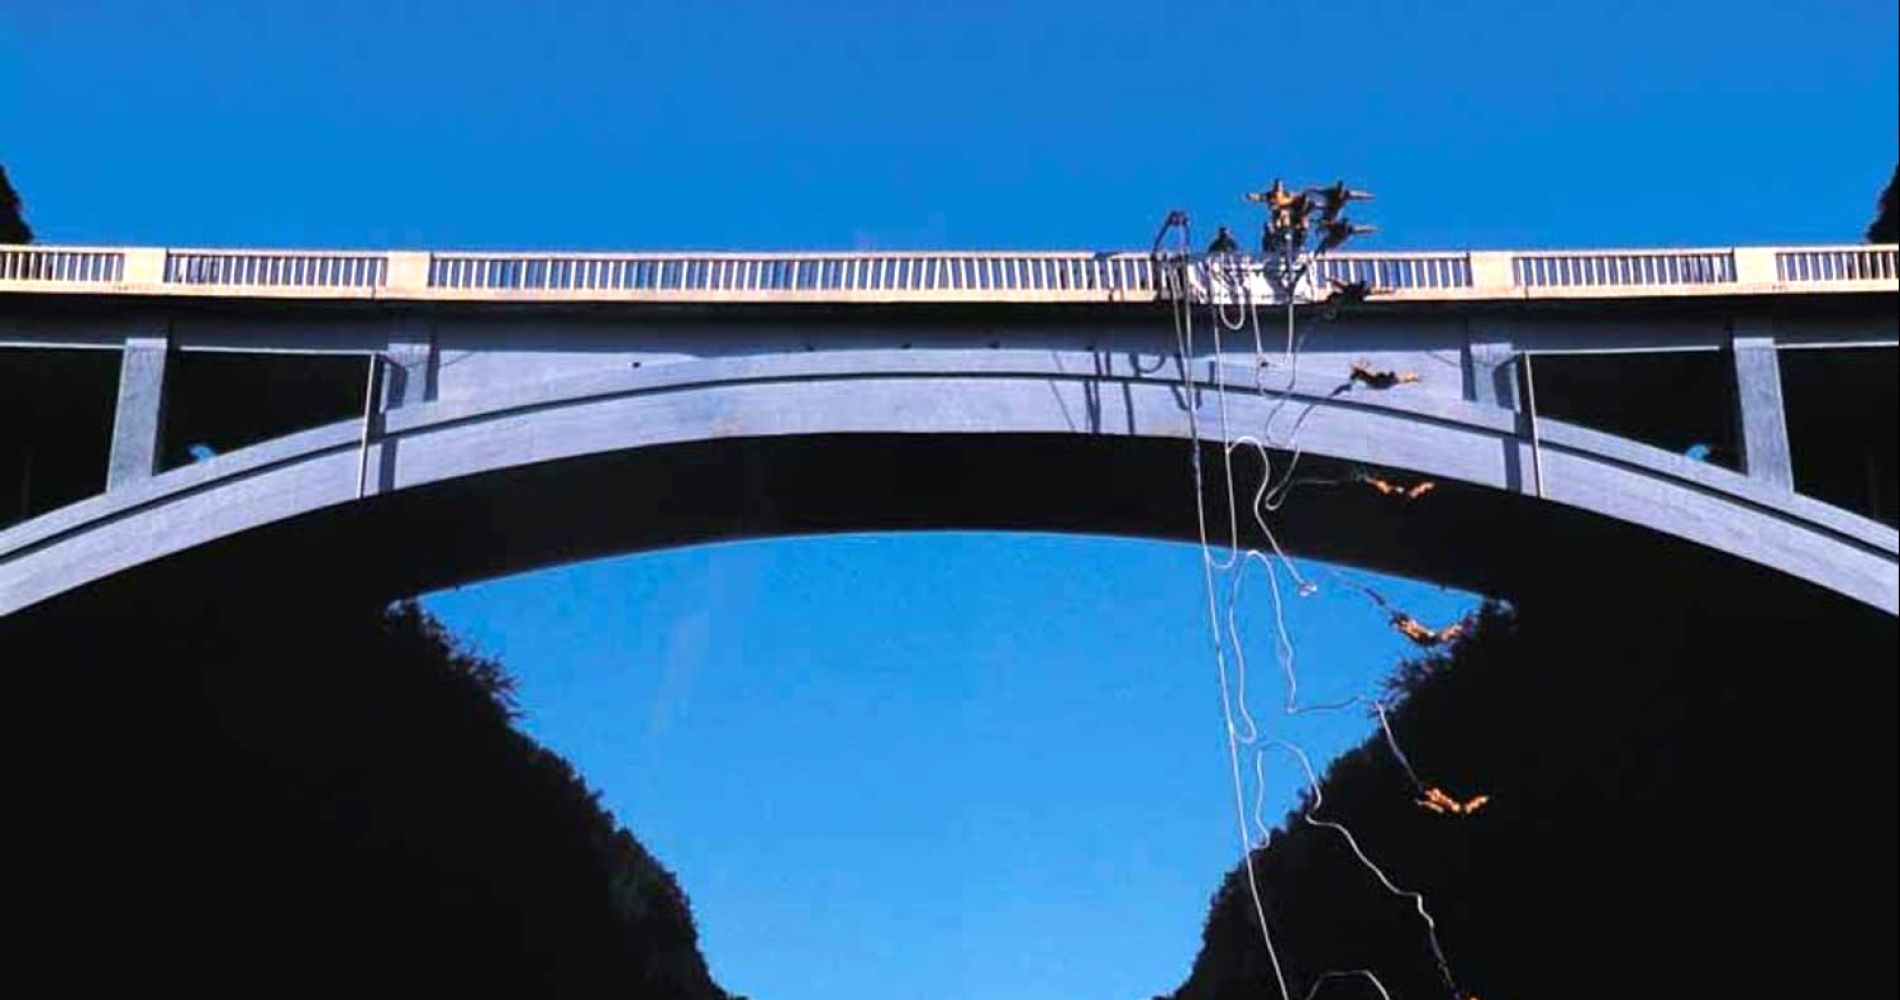 Bungee jumping on the Pont de Ponsonnas bridge